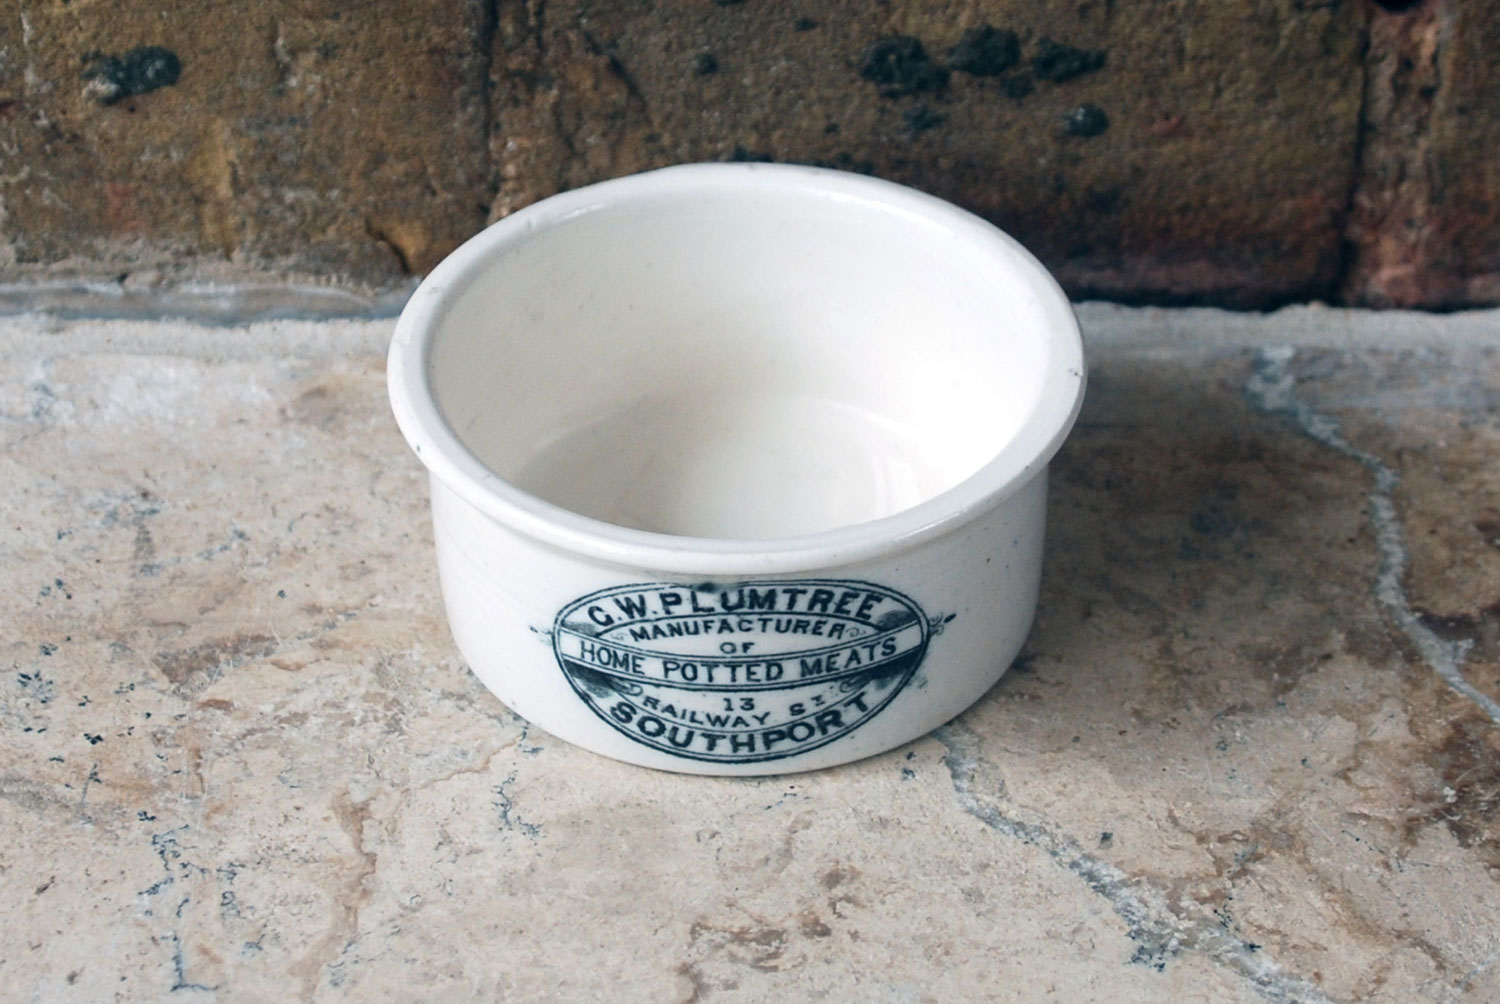 victorian edwardian antique ironstone pot GW Plumtree potted meat southport